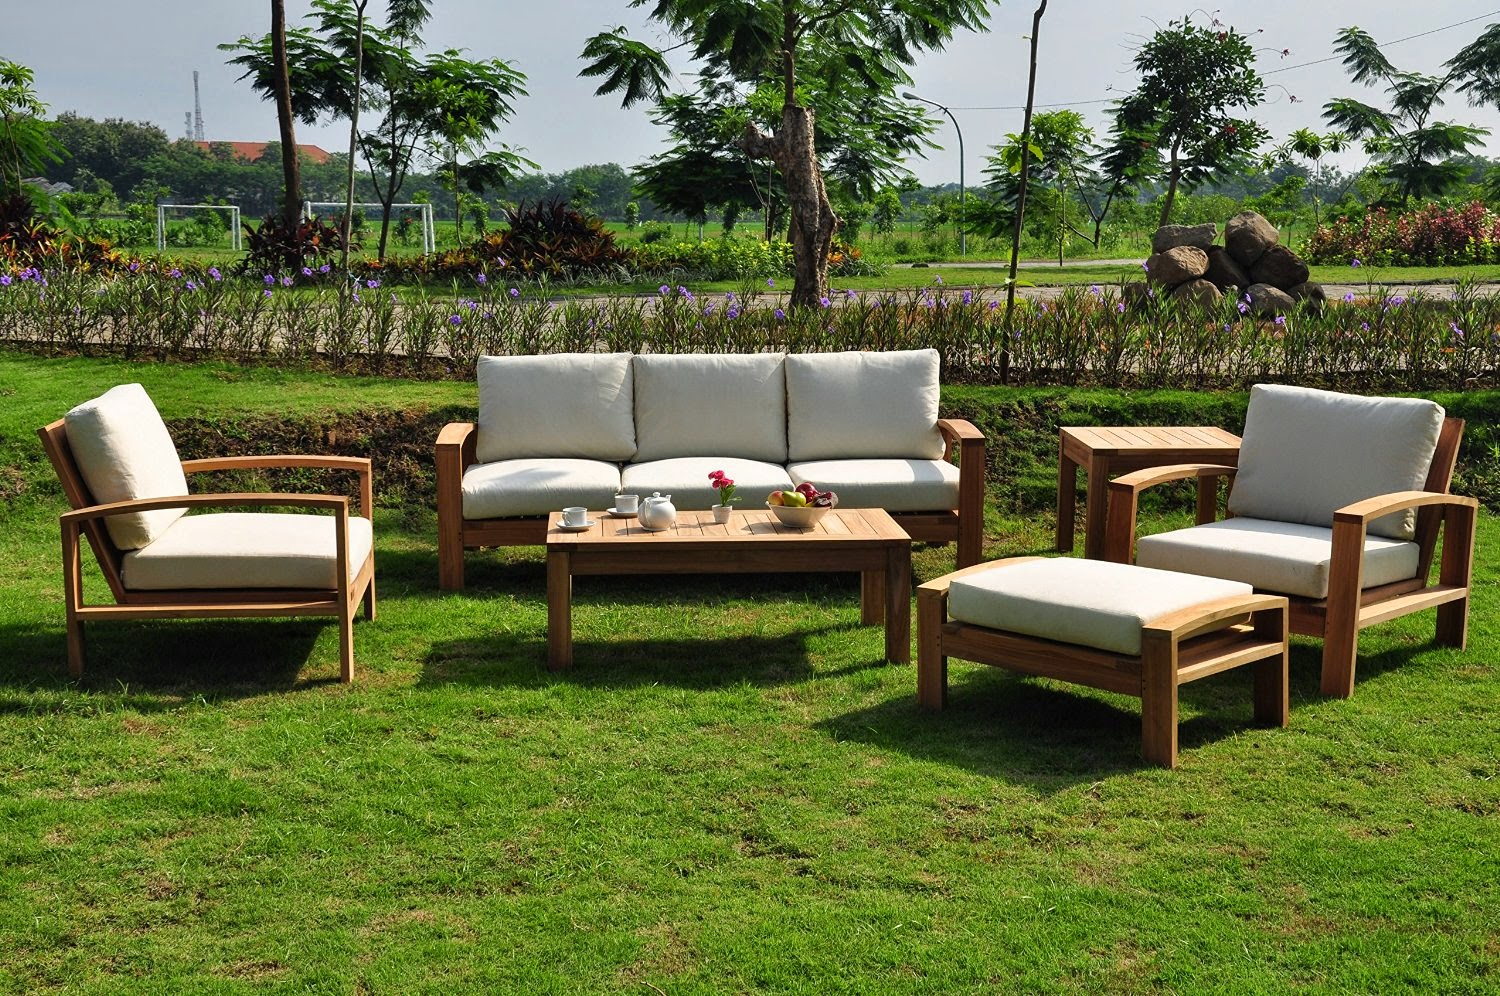 Modern Outdoor Sofa: Teak Outdoor Sofa